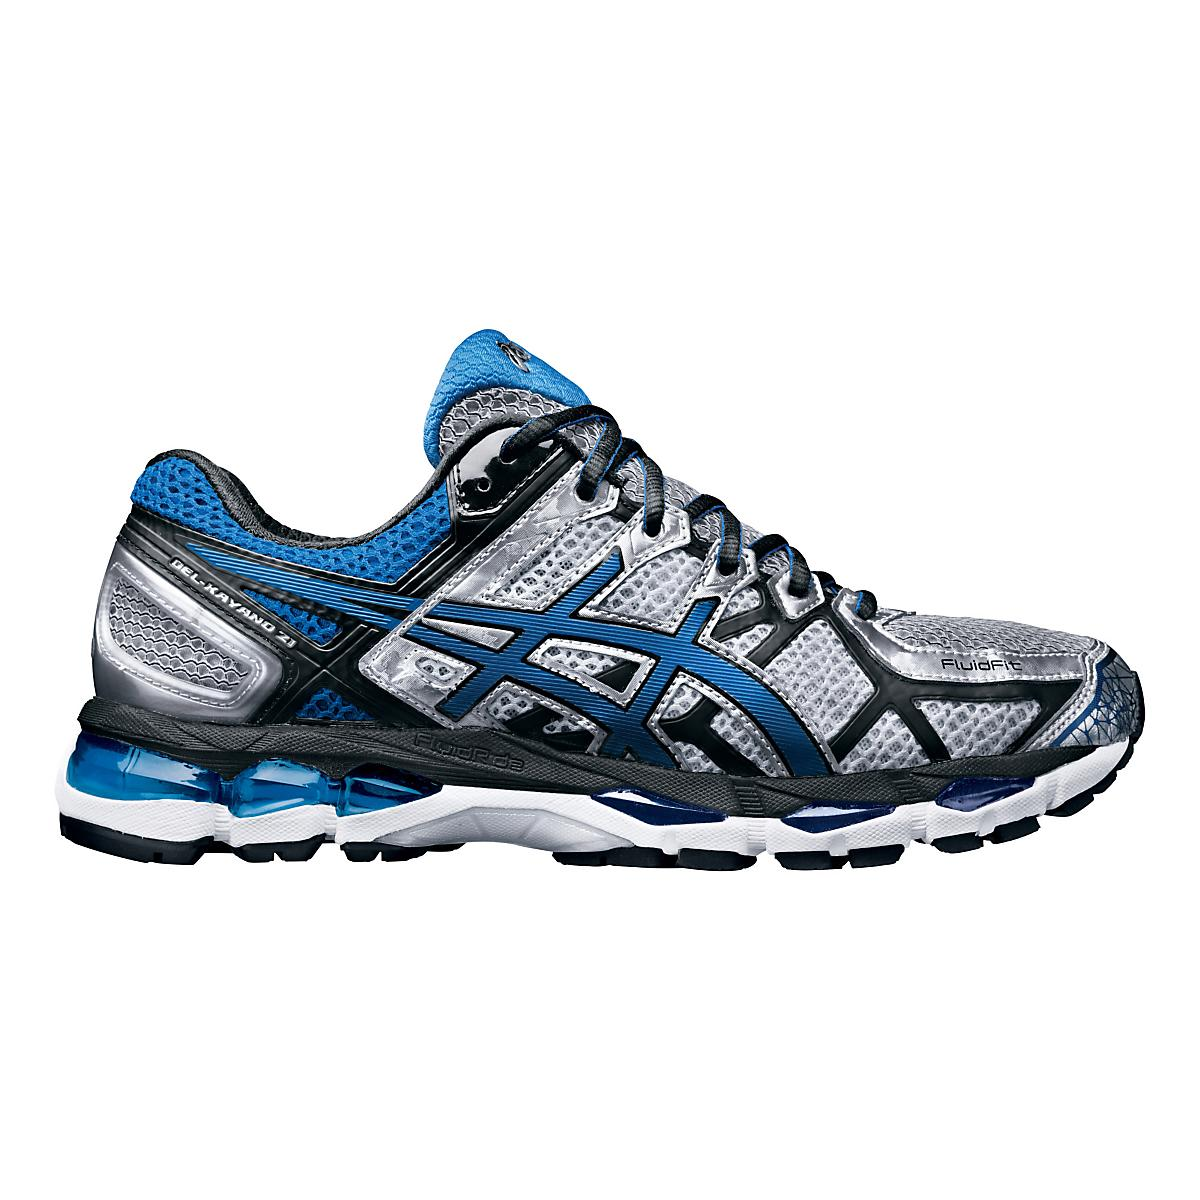 Asics Shoe Size Fit